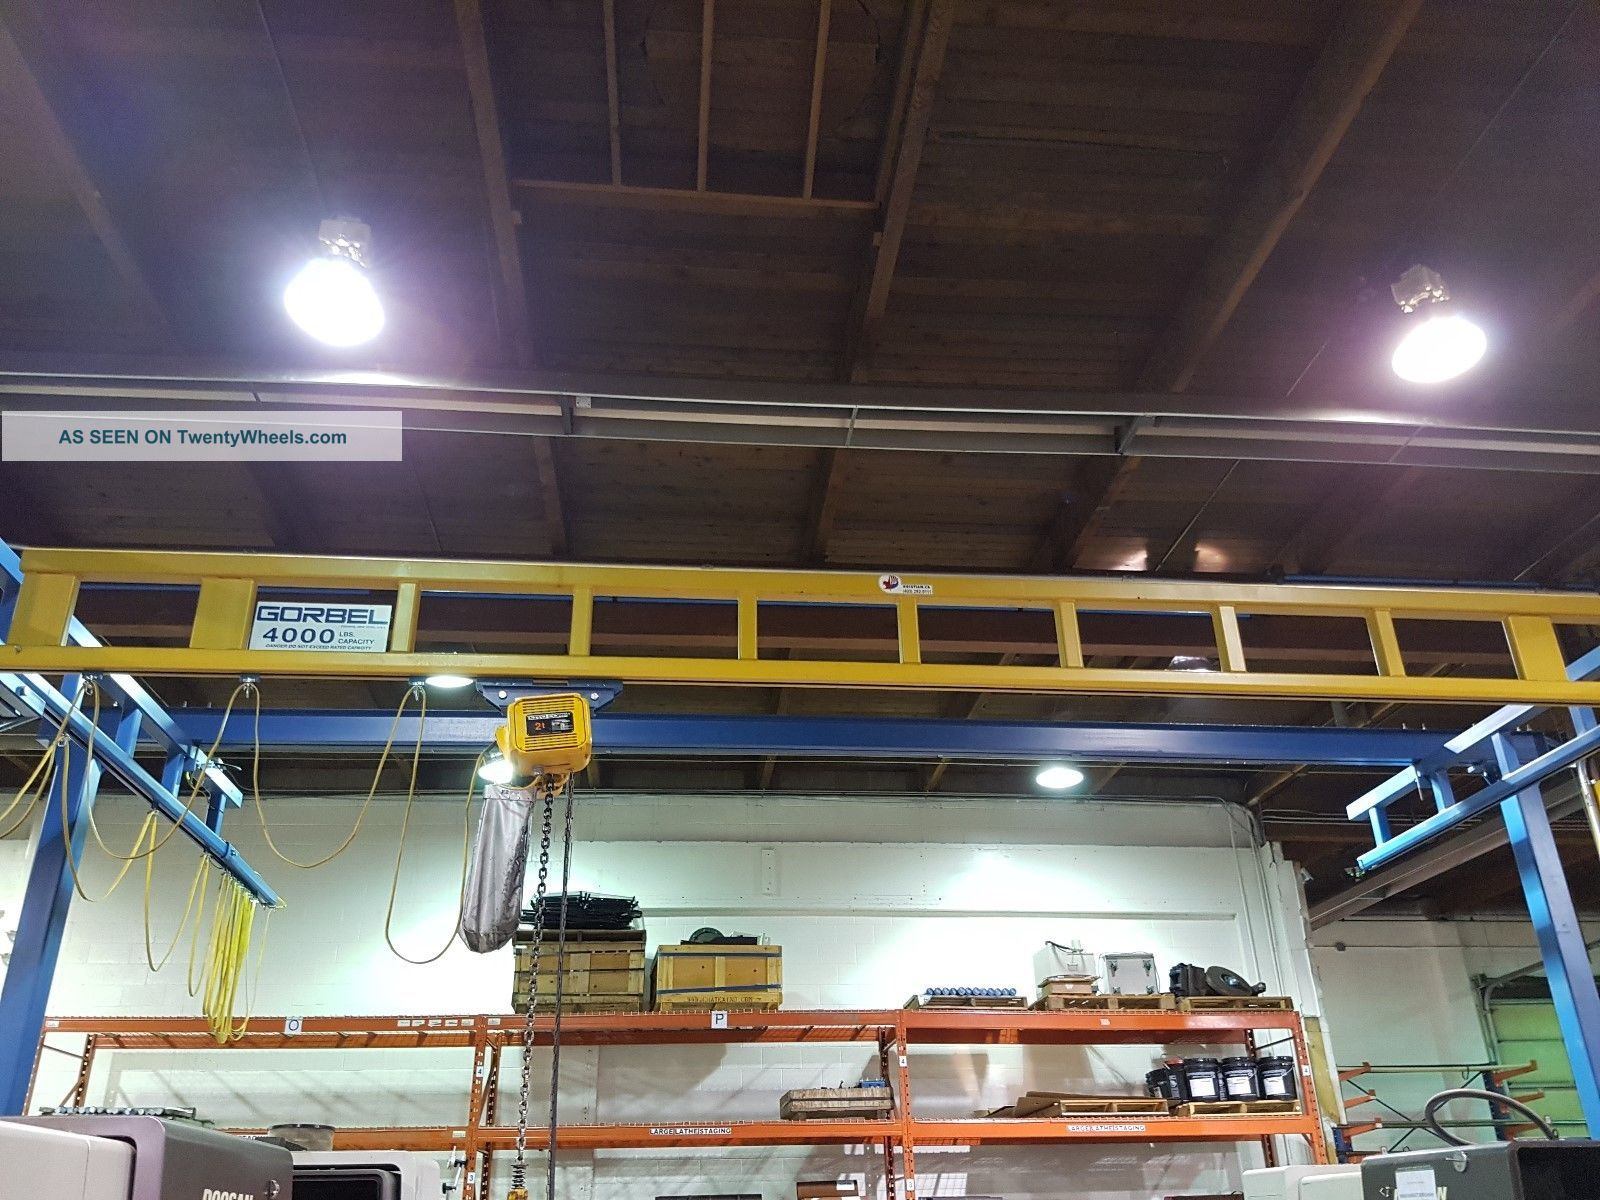 Gorbel Standing Bridge Crane System With 4000 Ib Crane Metalworking Lathes photo